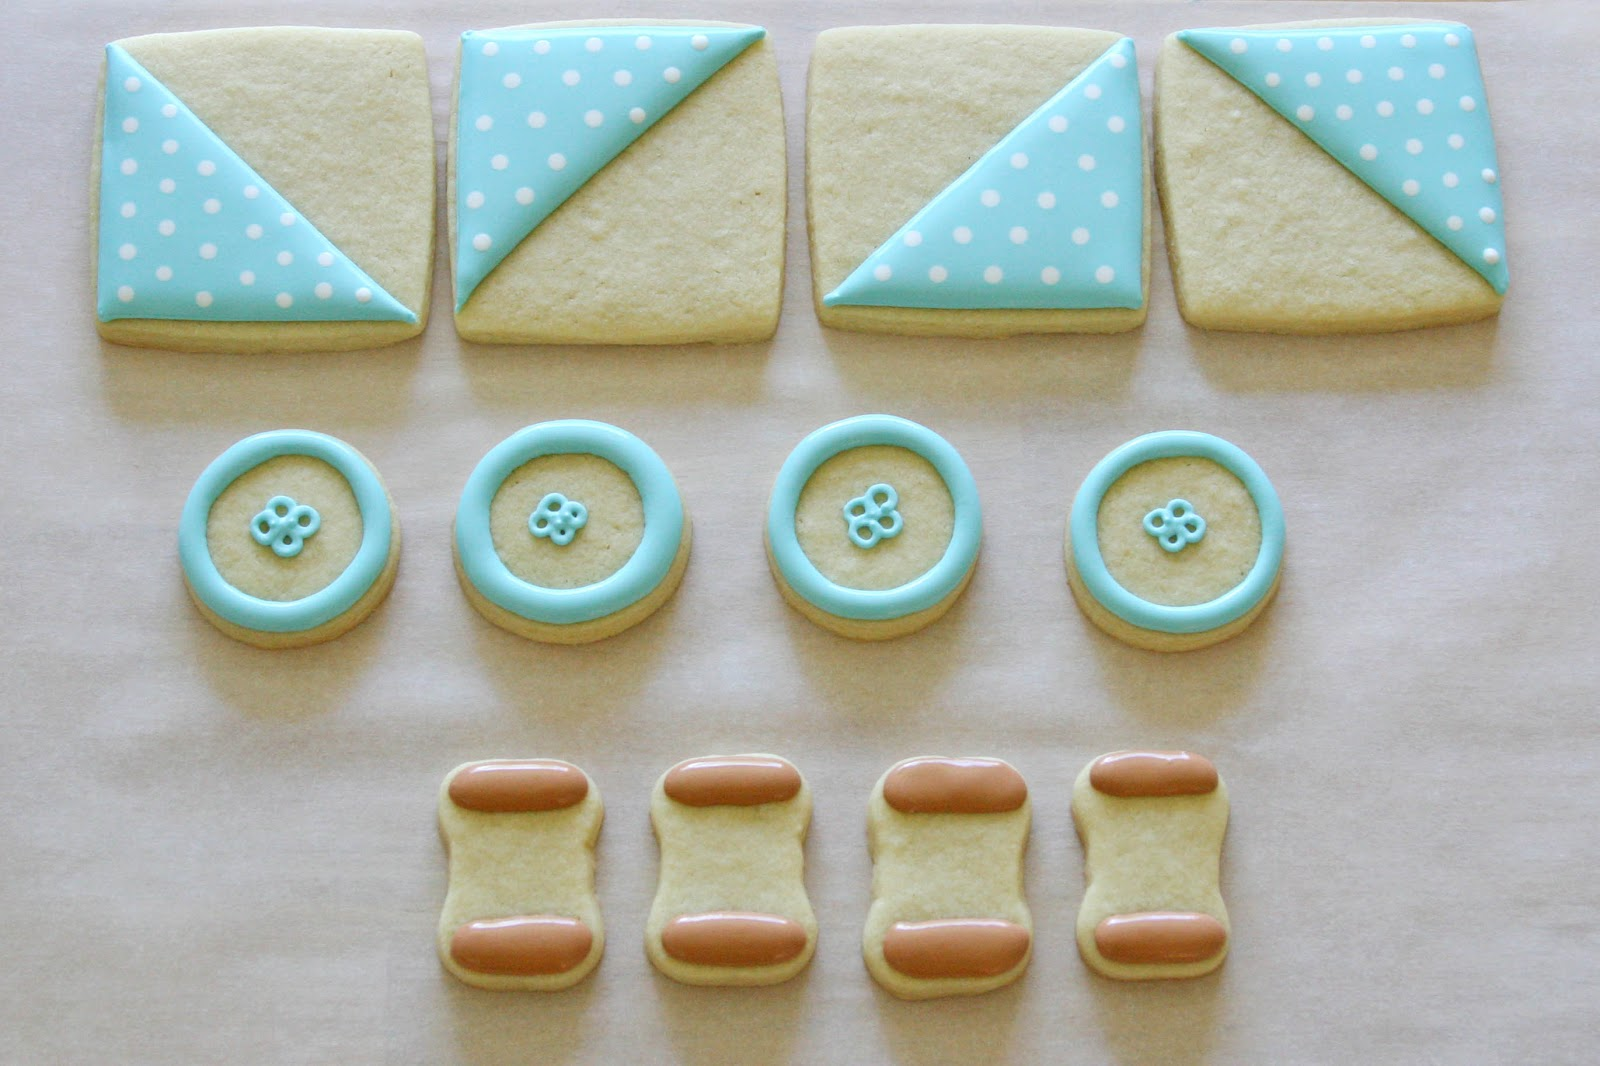 Cookies by design recipe frosting - Food next recipes